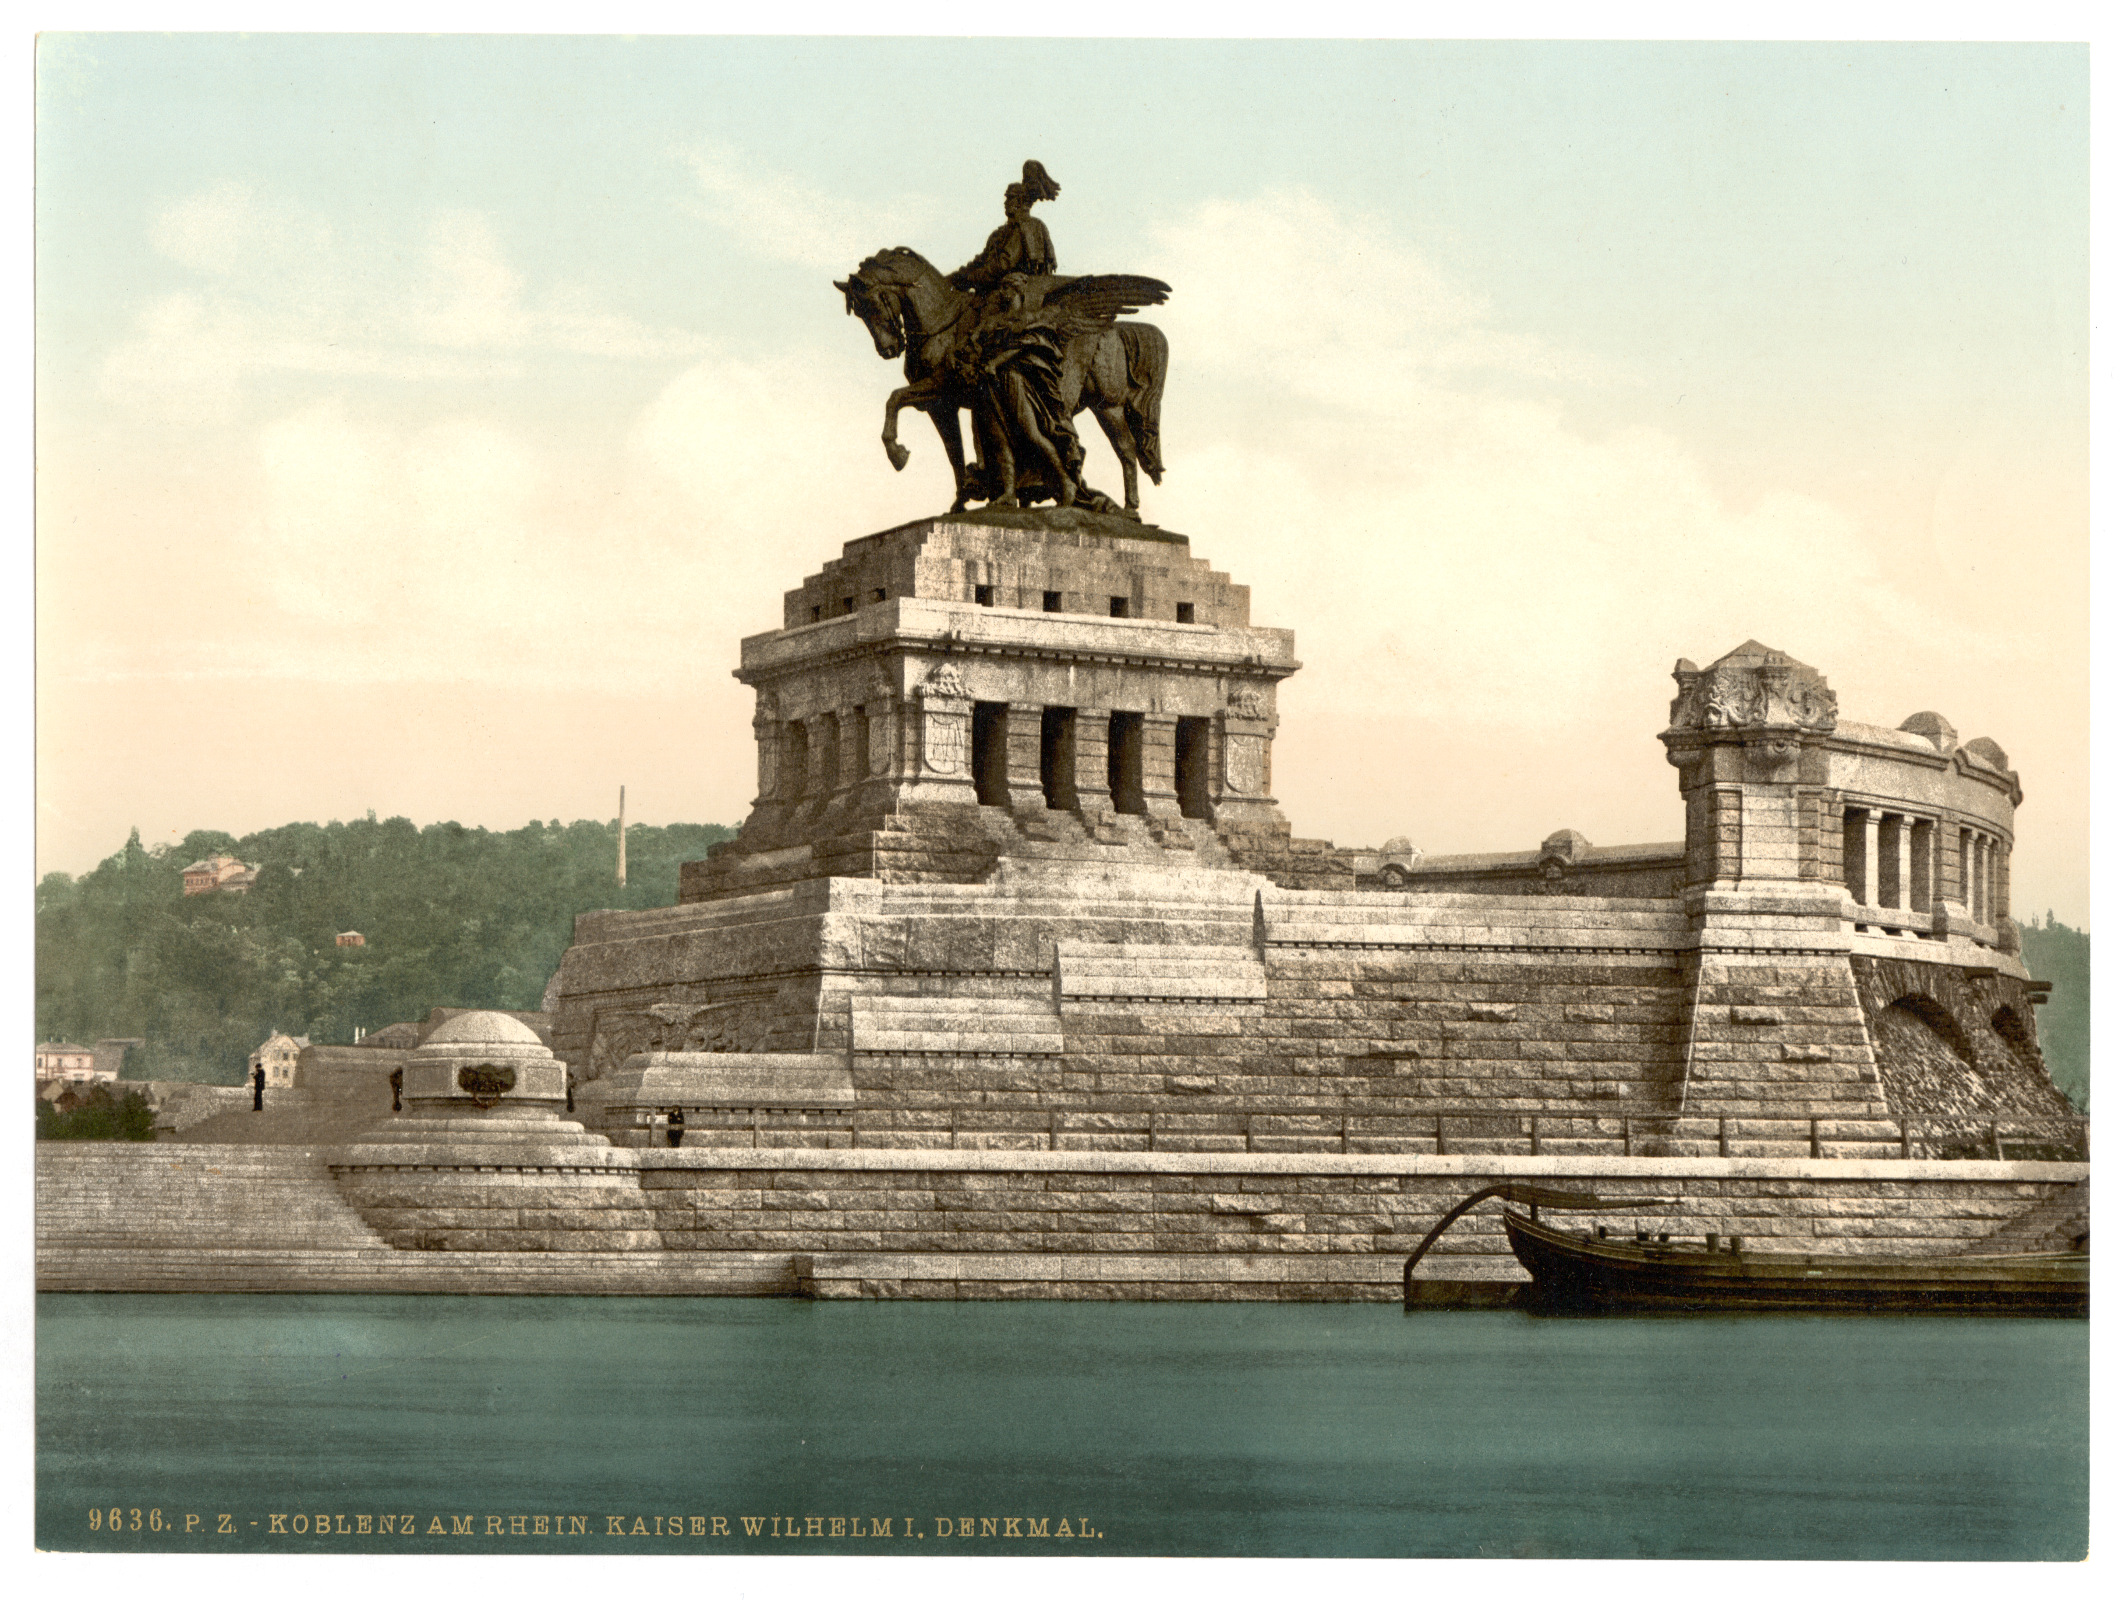 Photochromdruck, ca. 1890–1905.<br>